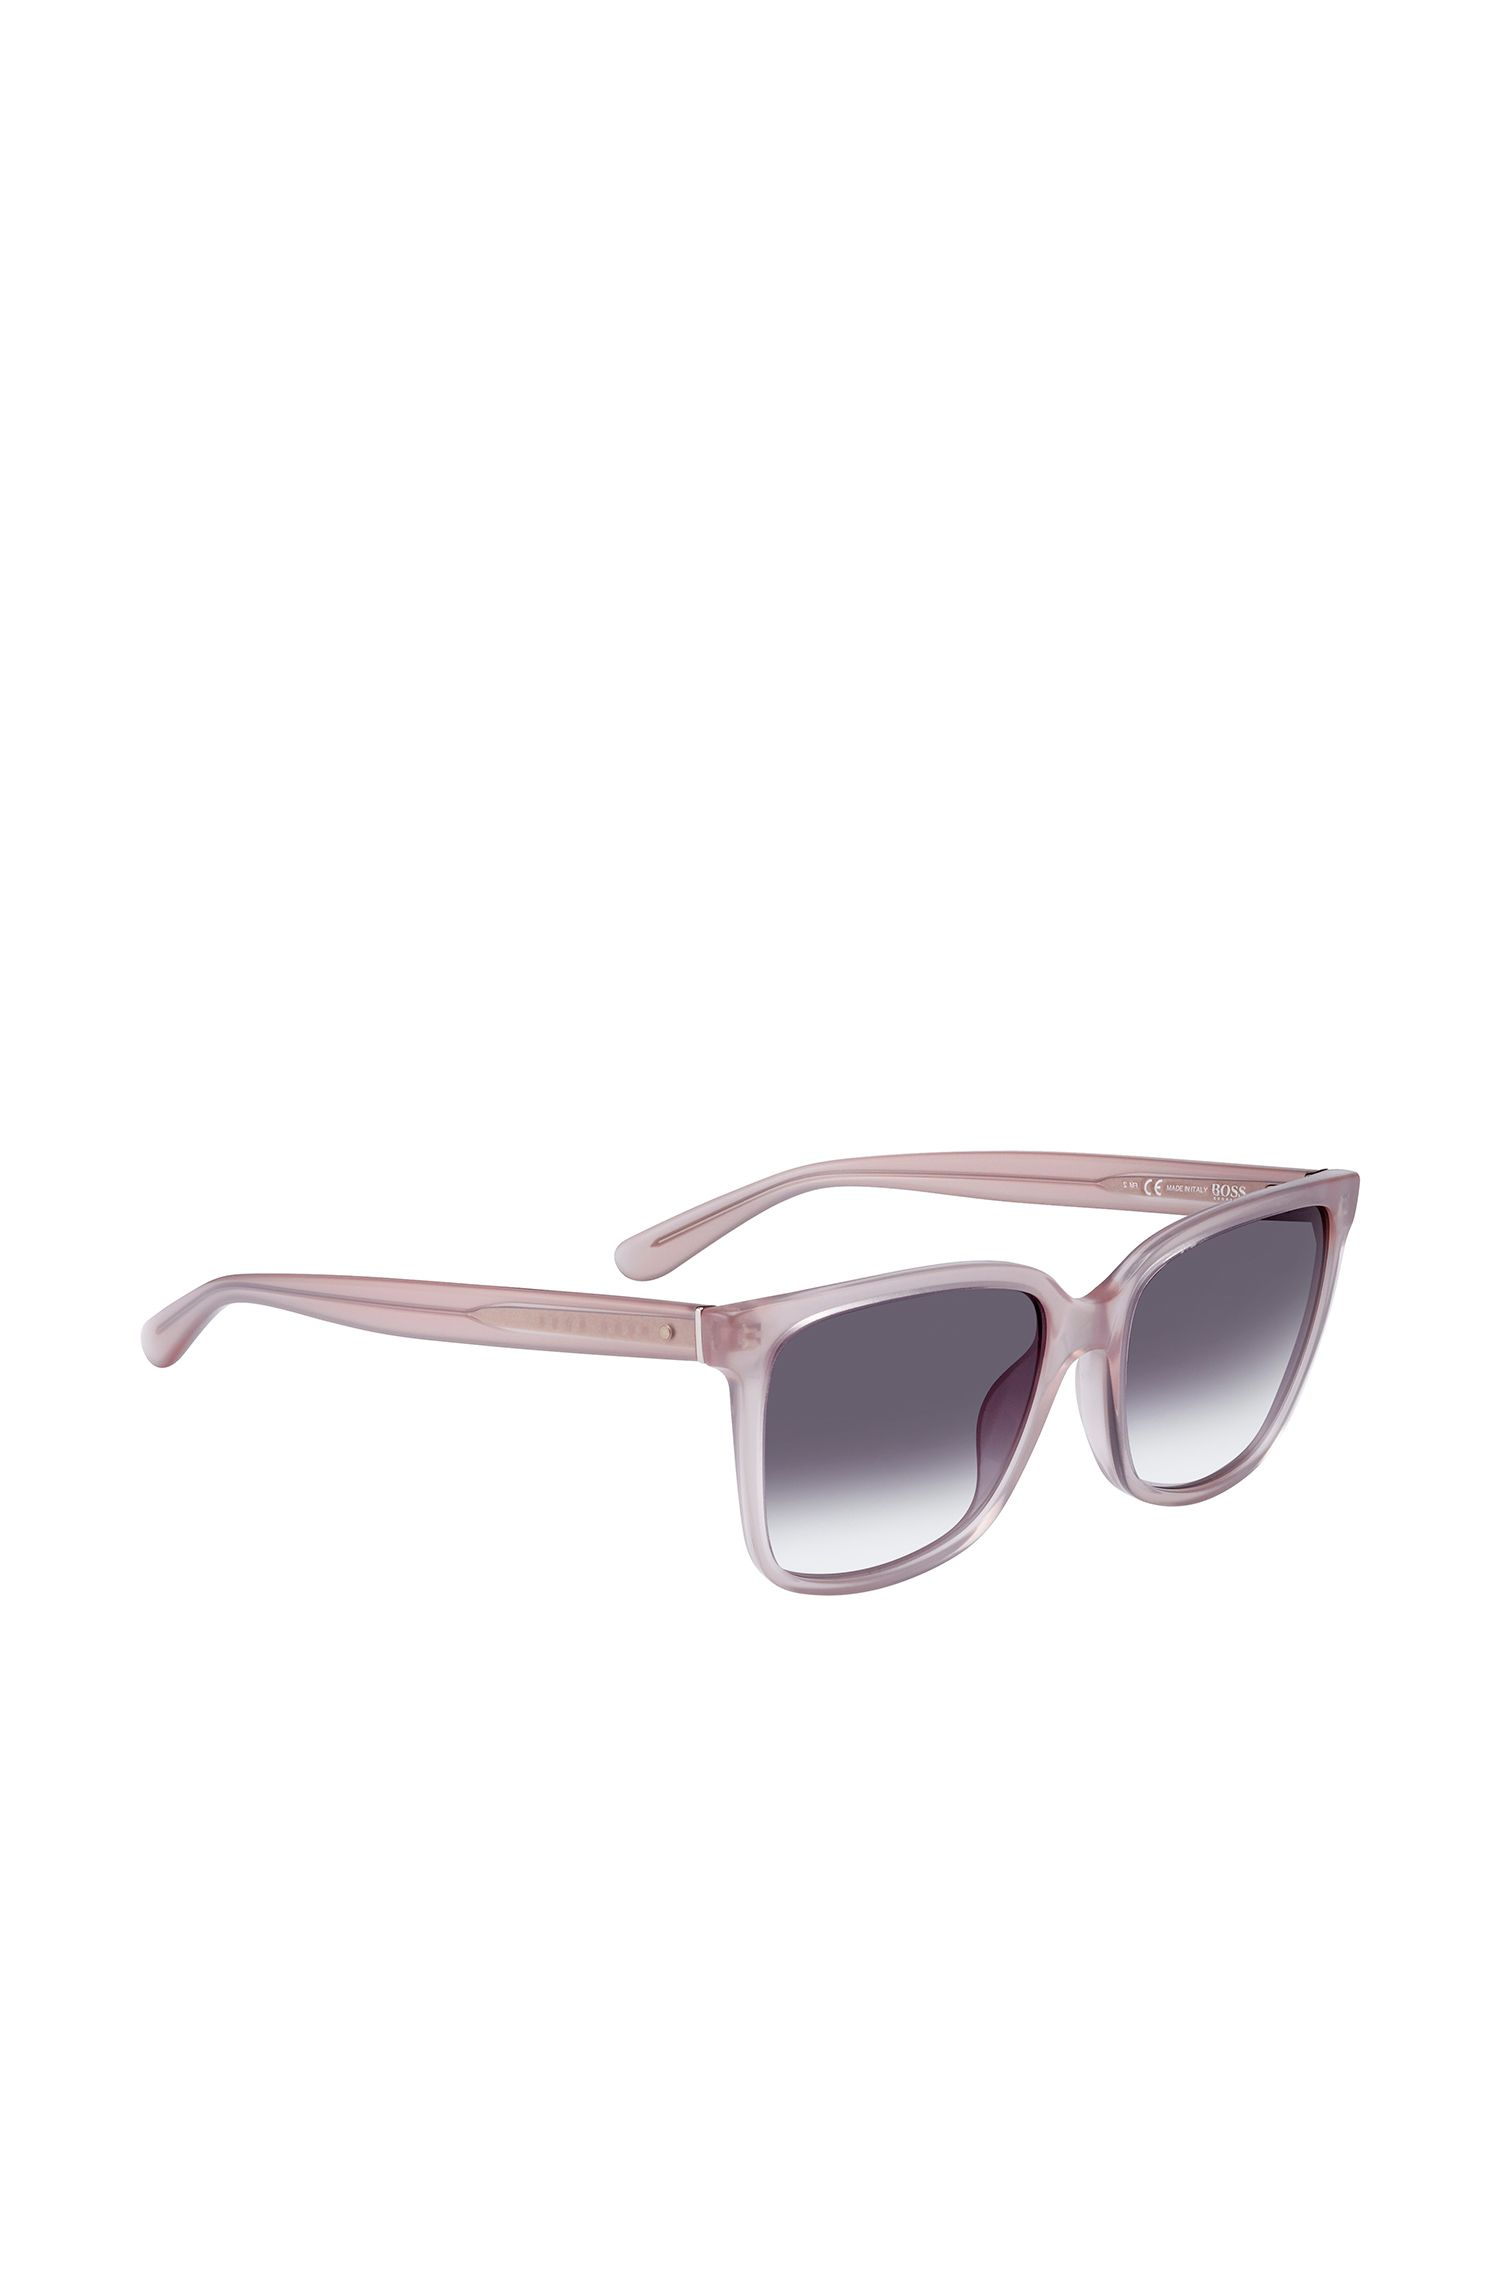 'BOSS 0787S' | Gray Gradient Lens Square Sunglasses